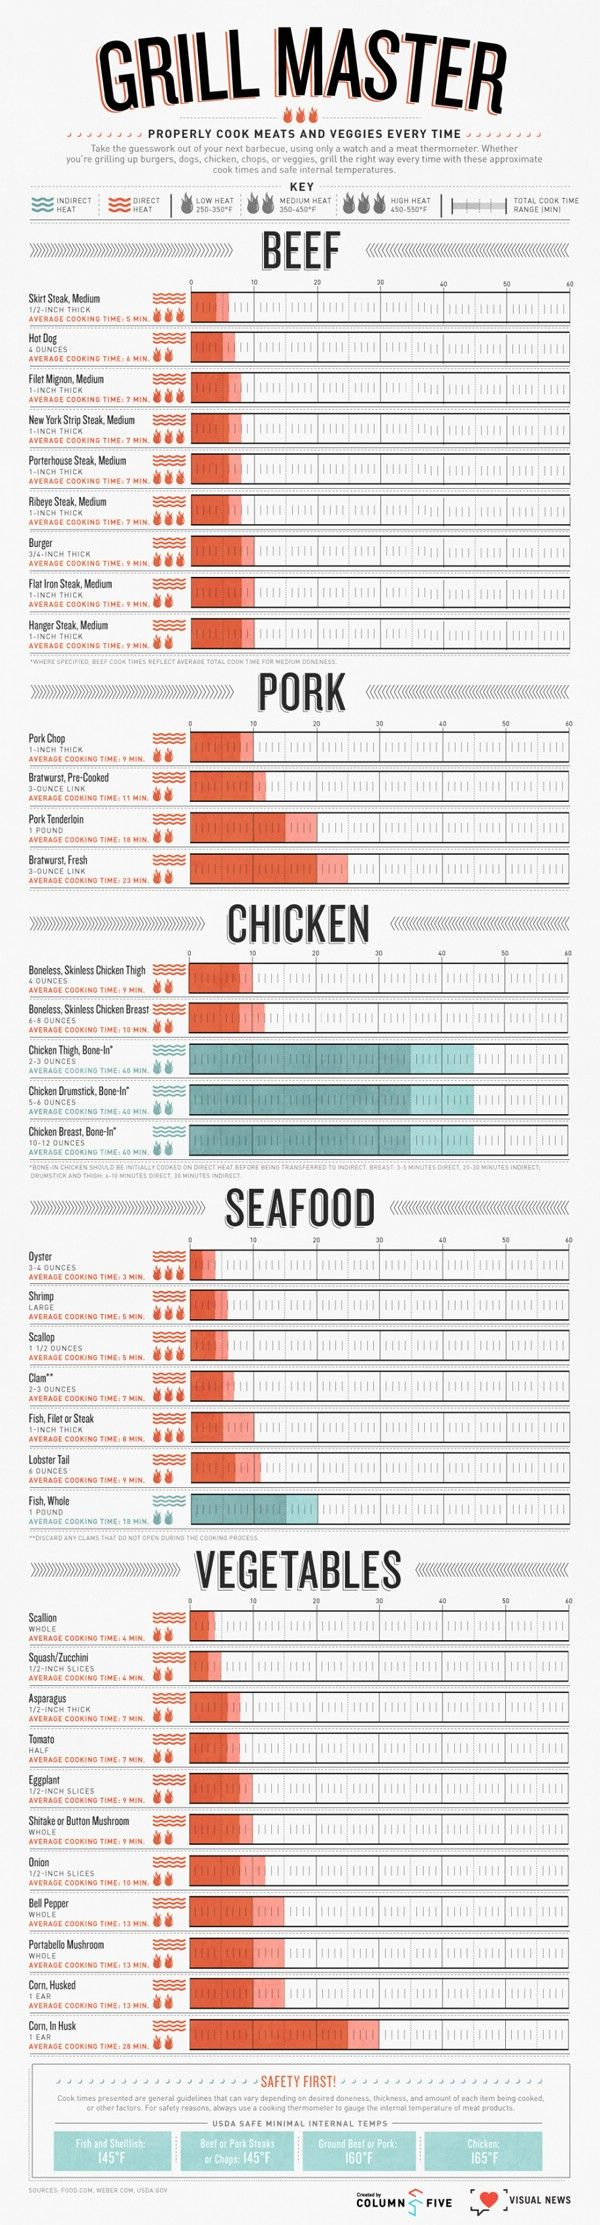 Grilling - Even during colder months, many people prefer the taste of grilled foods over those cooked on a stove. This chart will help you understand grilling and how to ensure meats and vegetables come out perfect every time.